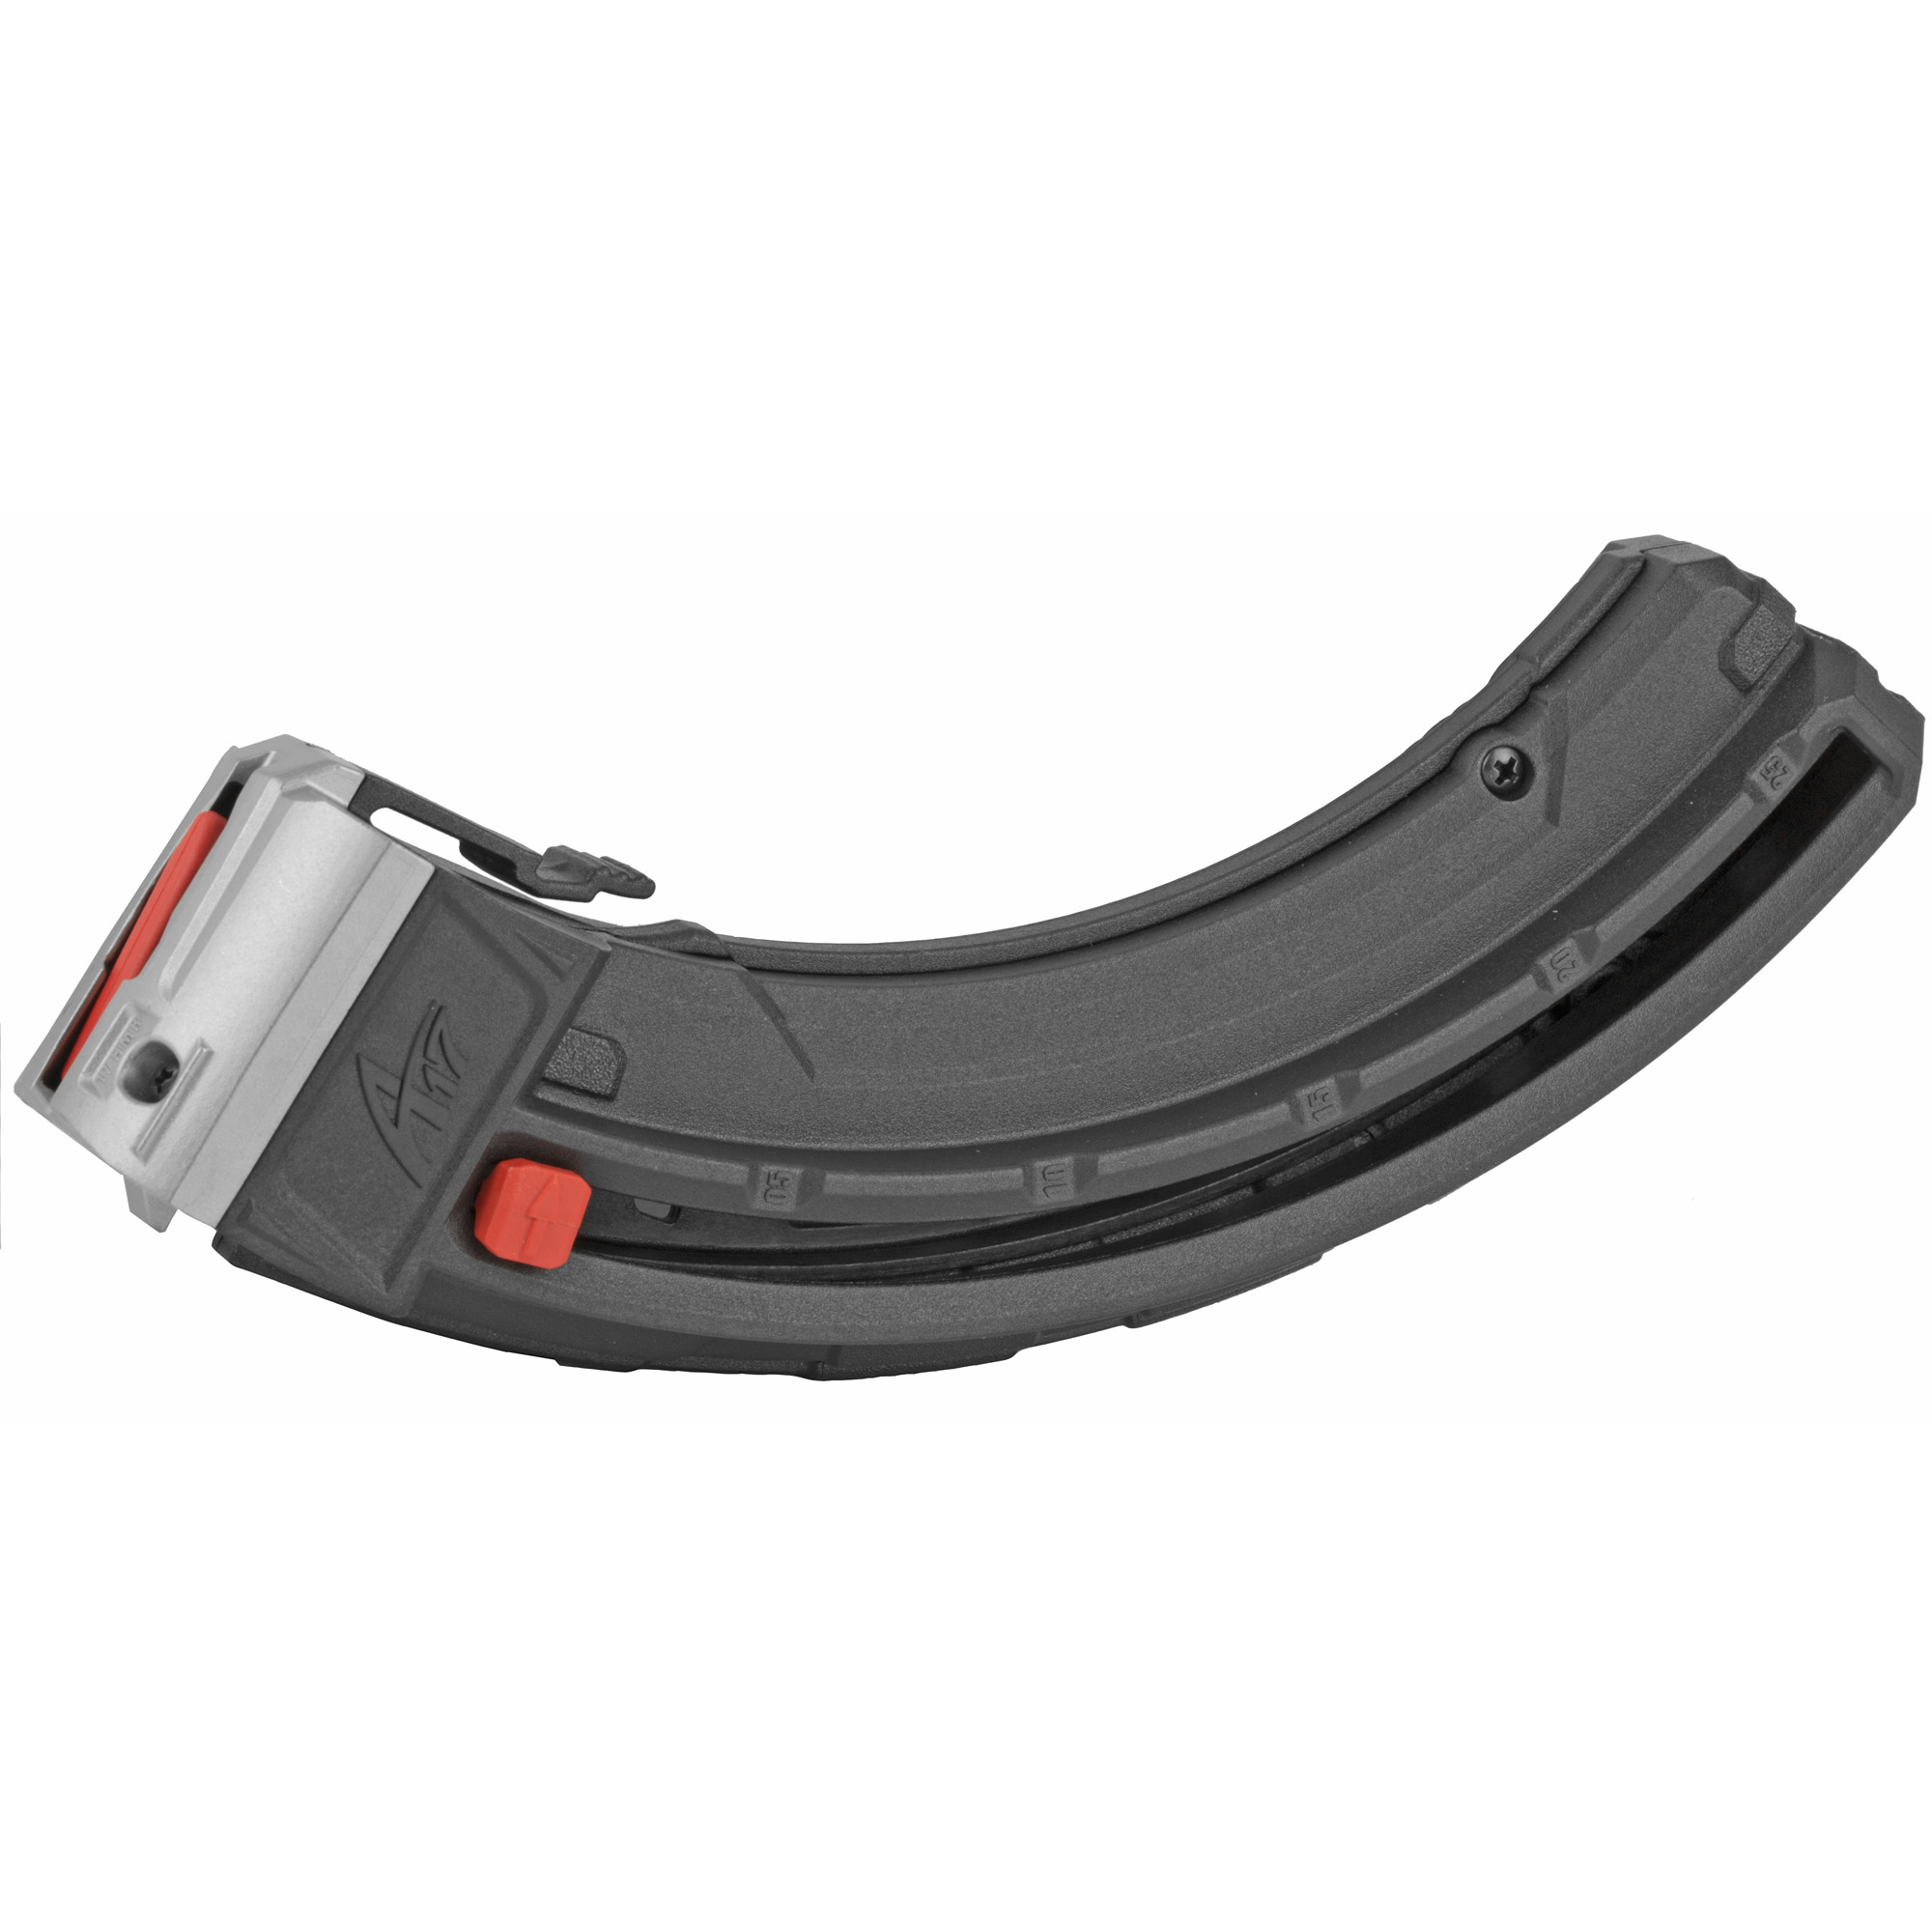 "Get the most out of your Savage A-Series rifle with one of Butler Creek's 25-round magazines. It features a stainless steel spring and all metal header and feed lips for reliable feeding. A remaining round indicator on the side lets you know when the magazine is running short of rounds. These A-Series 25-round magazines gives you more time behind the rifle"" and less time reloading."